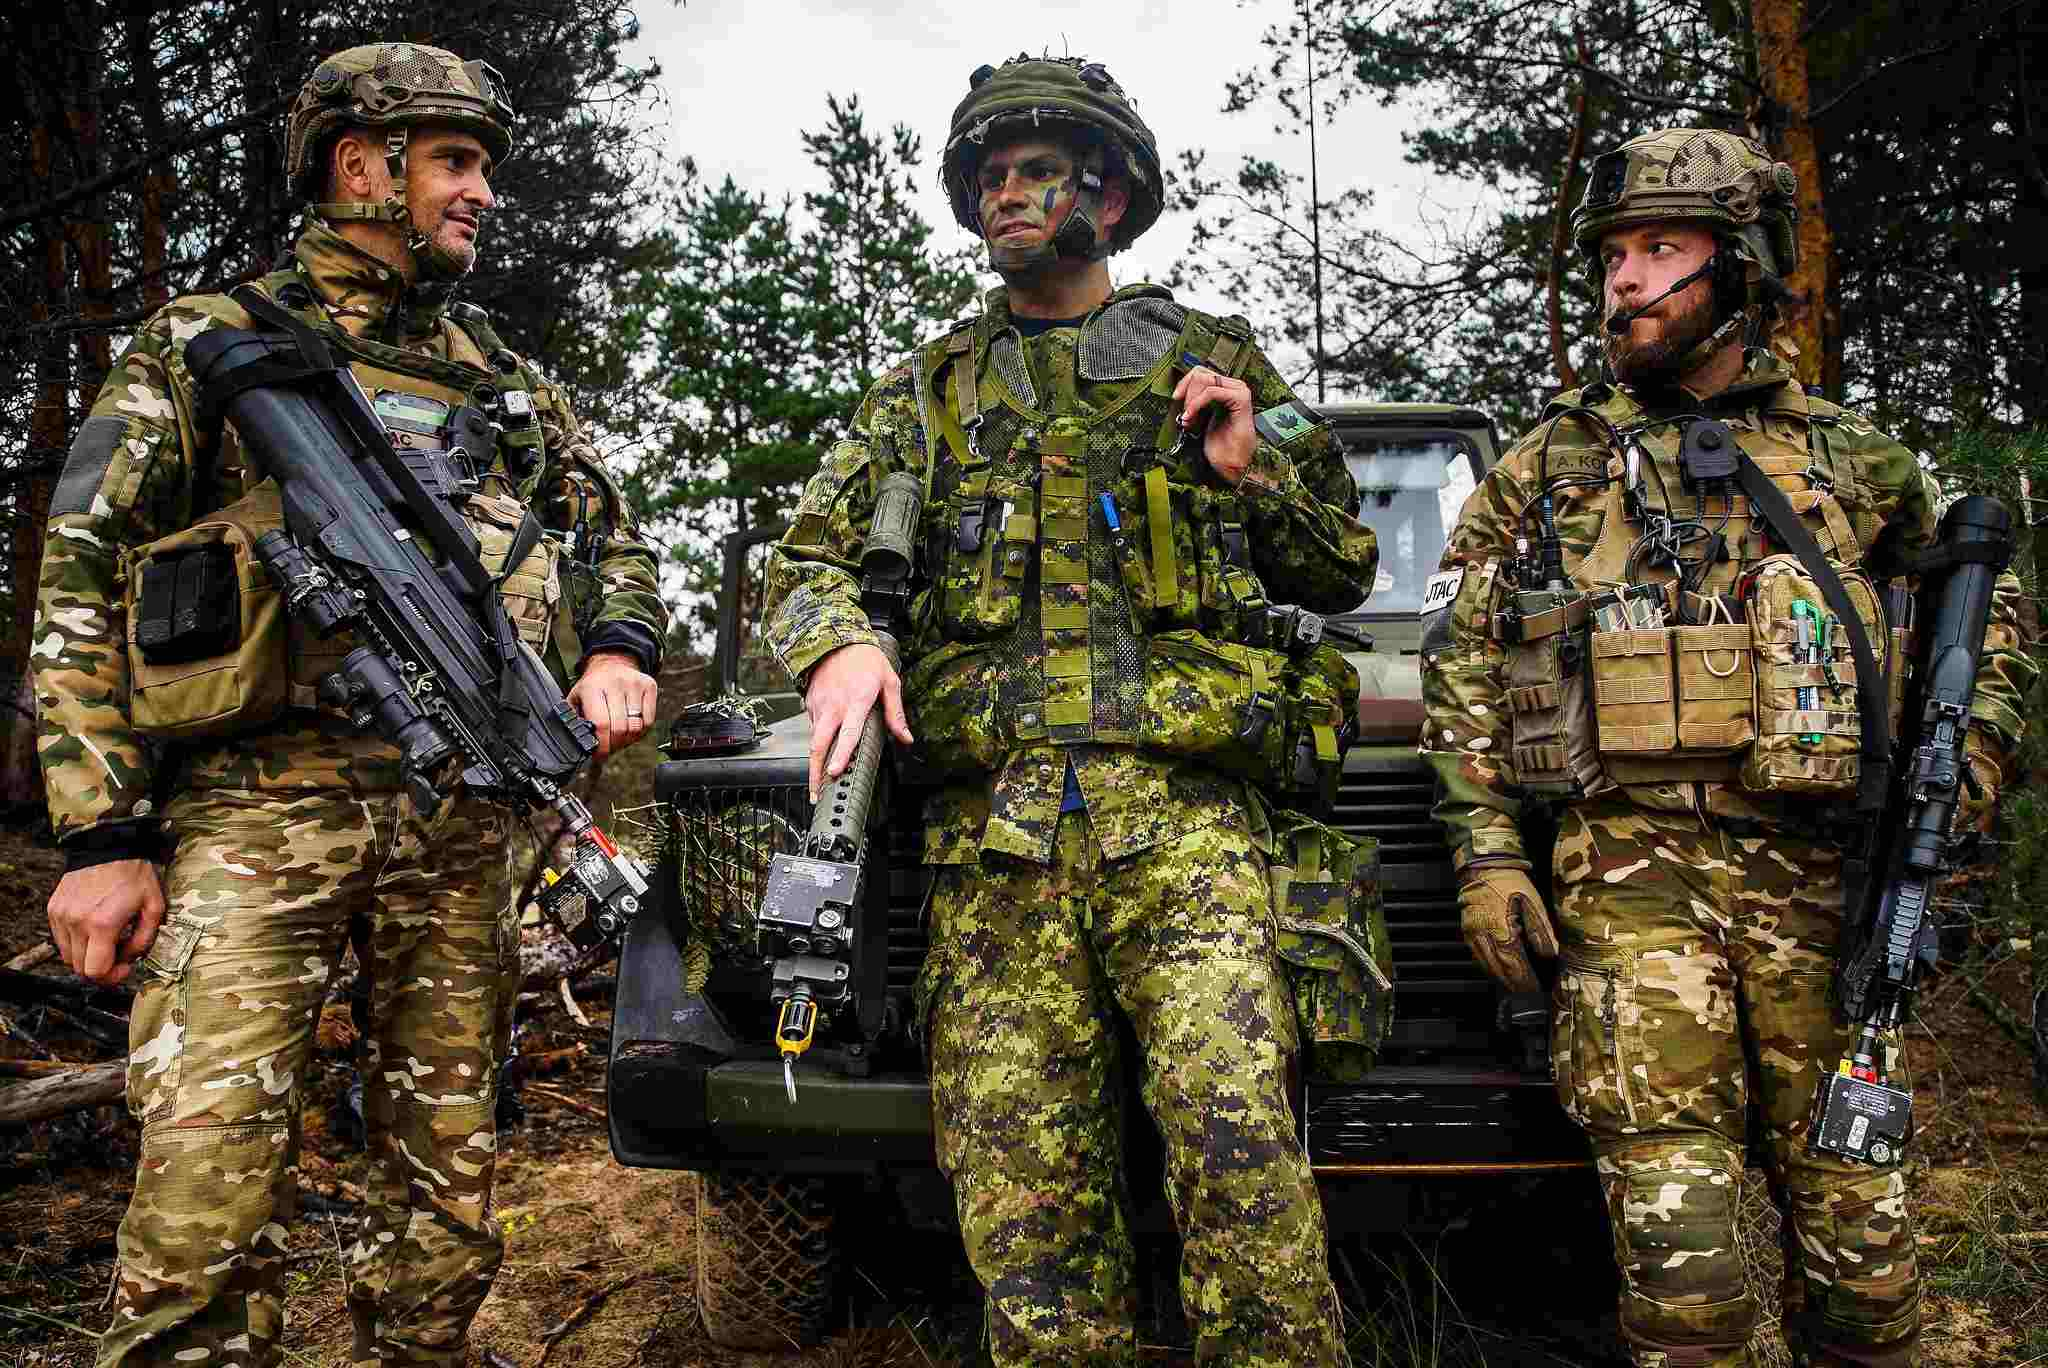 A Canadian officer from the 3rd Canadian Division speaks to members of the Slovenia J-TAC during a certification exercise. Members of the multinational battlegroup making up part of NATO's enhanced forward presence in Eastern Europe at Camp Adazi in Latvia. Credit: NATO